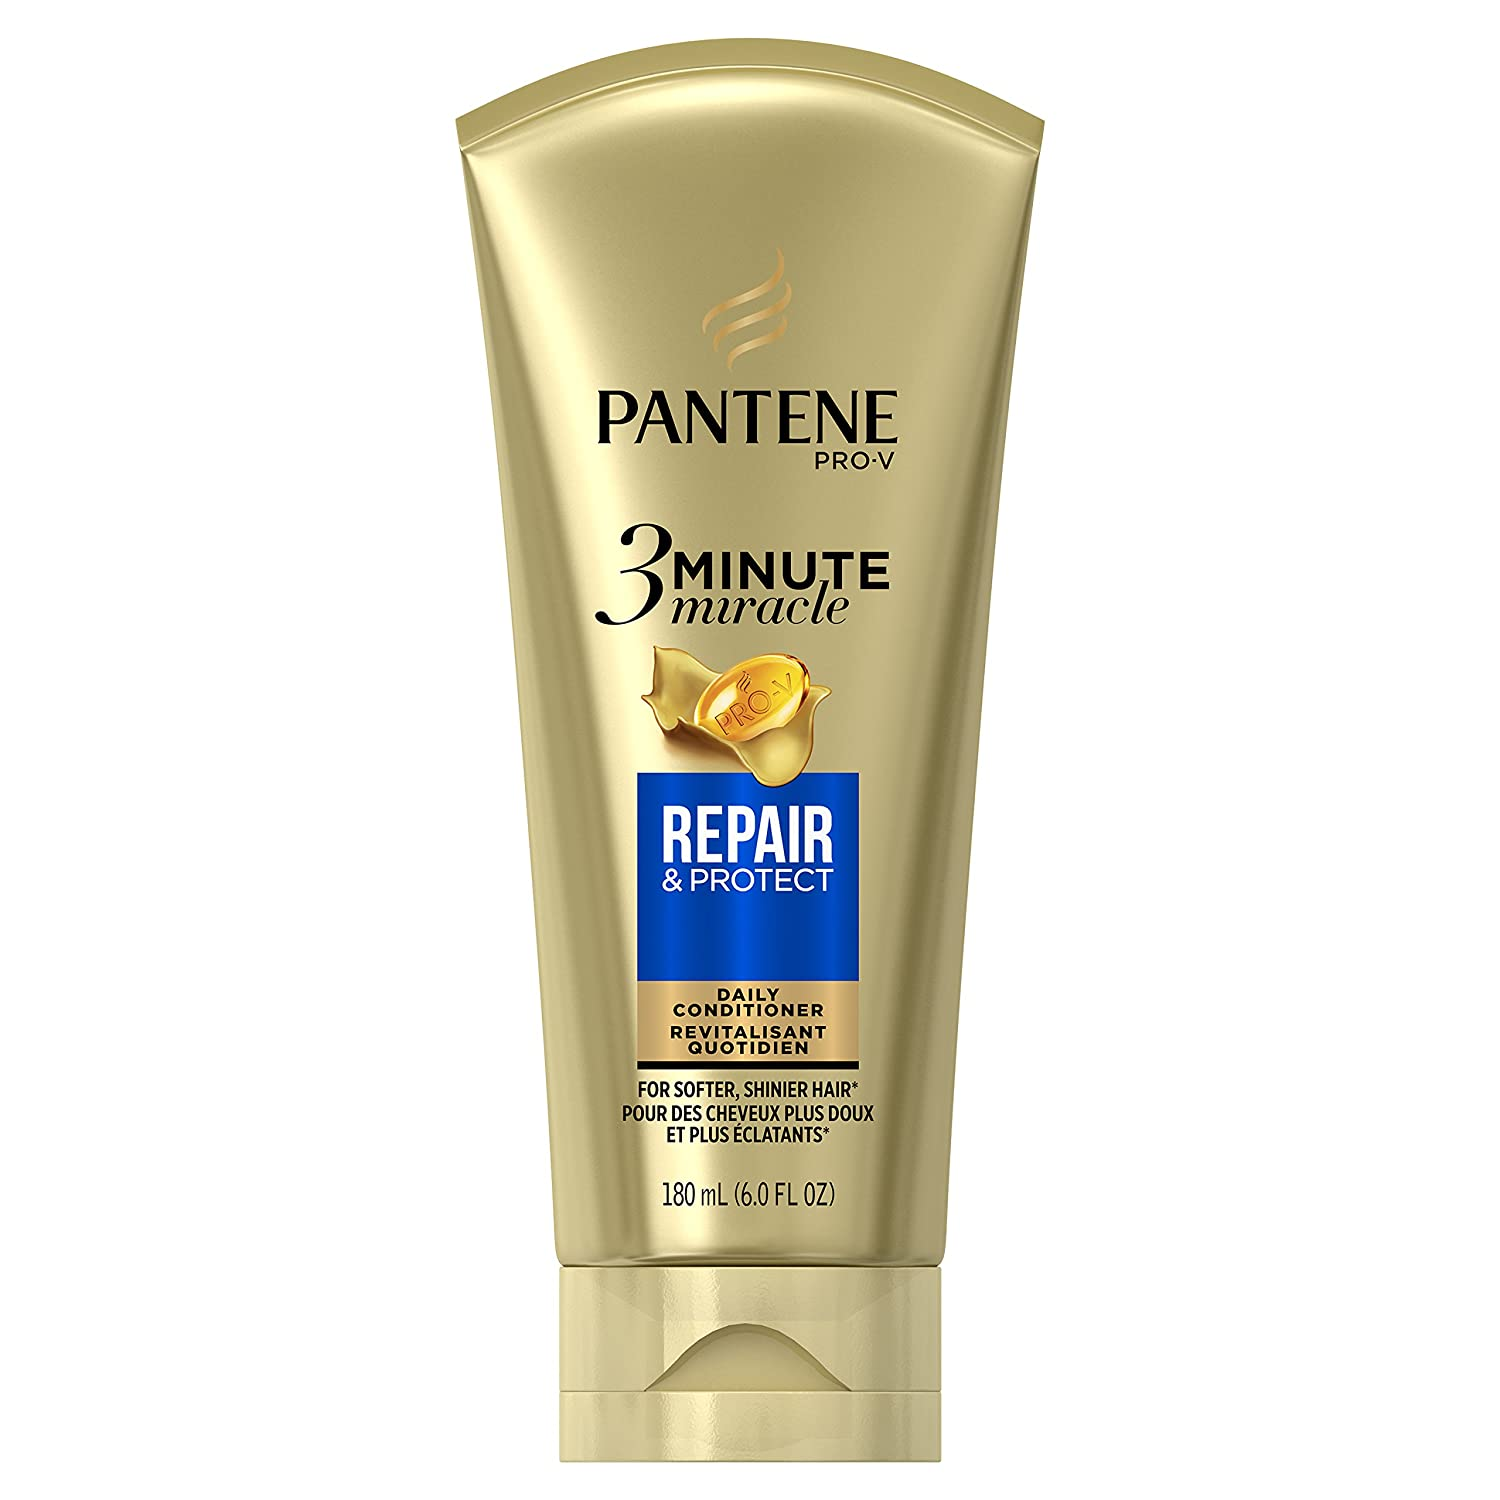 Pantene Repair and Protect 3 Minute Miracle Deep Conditioner, 6 Fluid Ounce